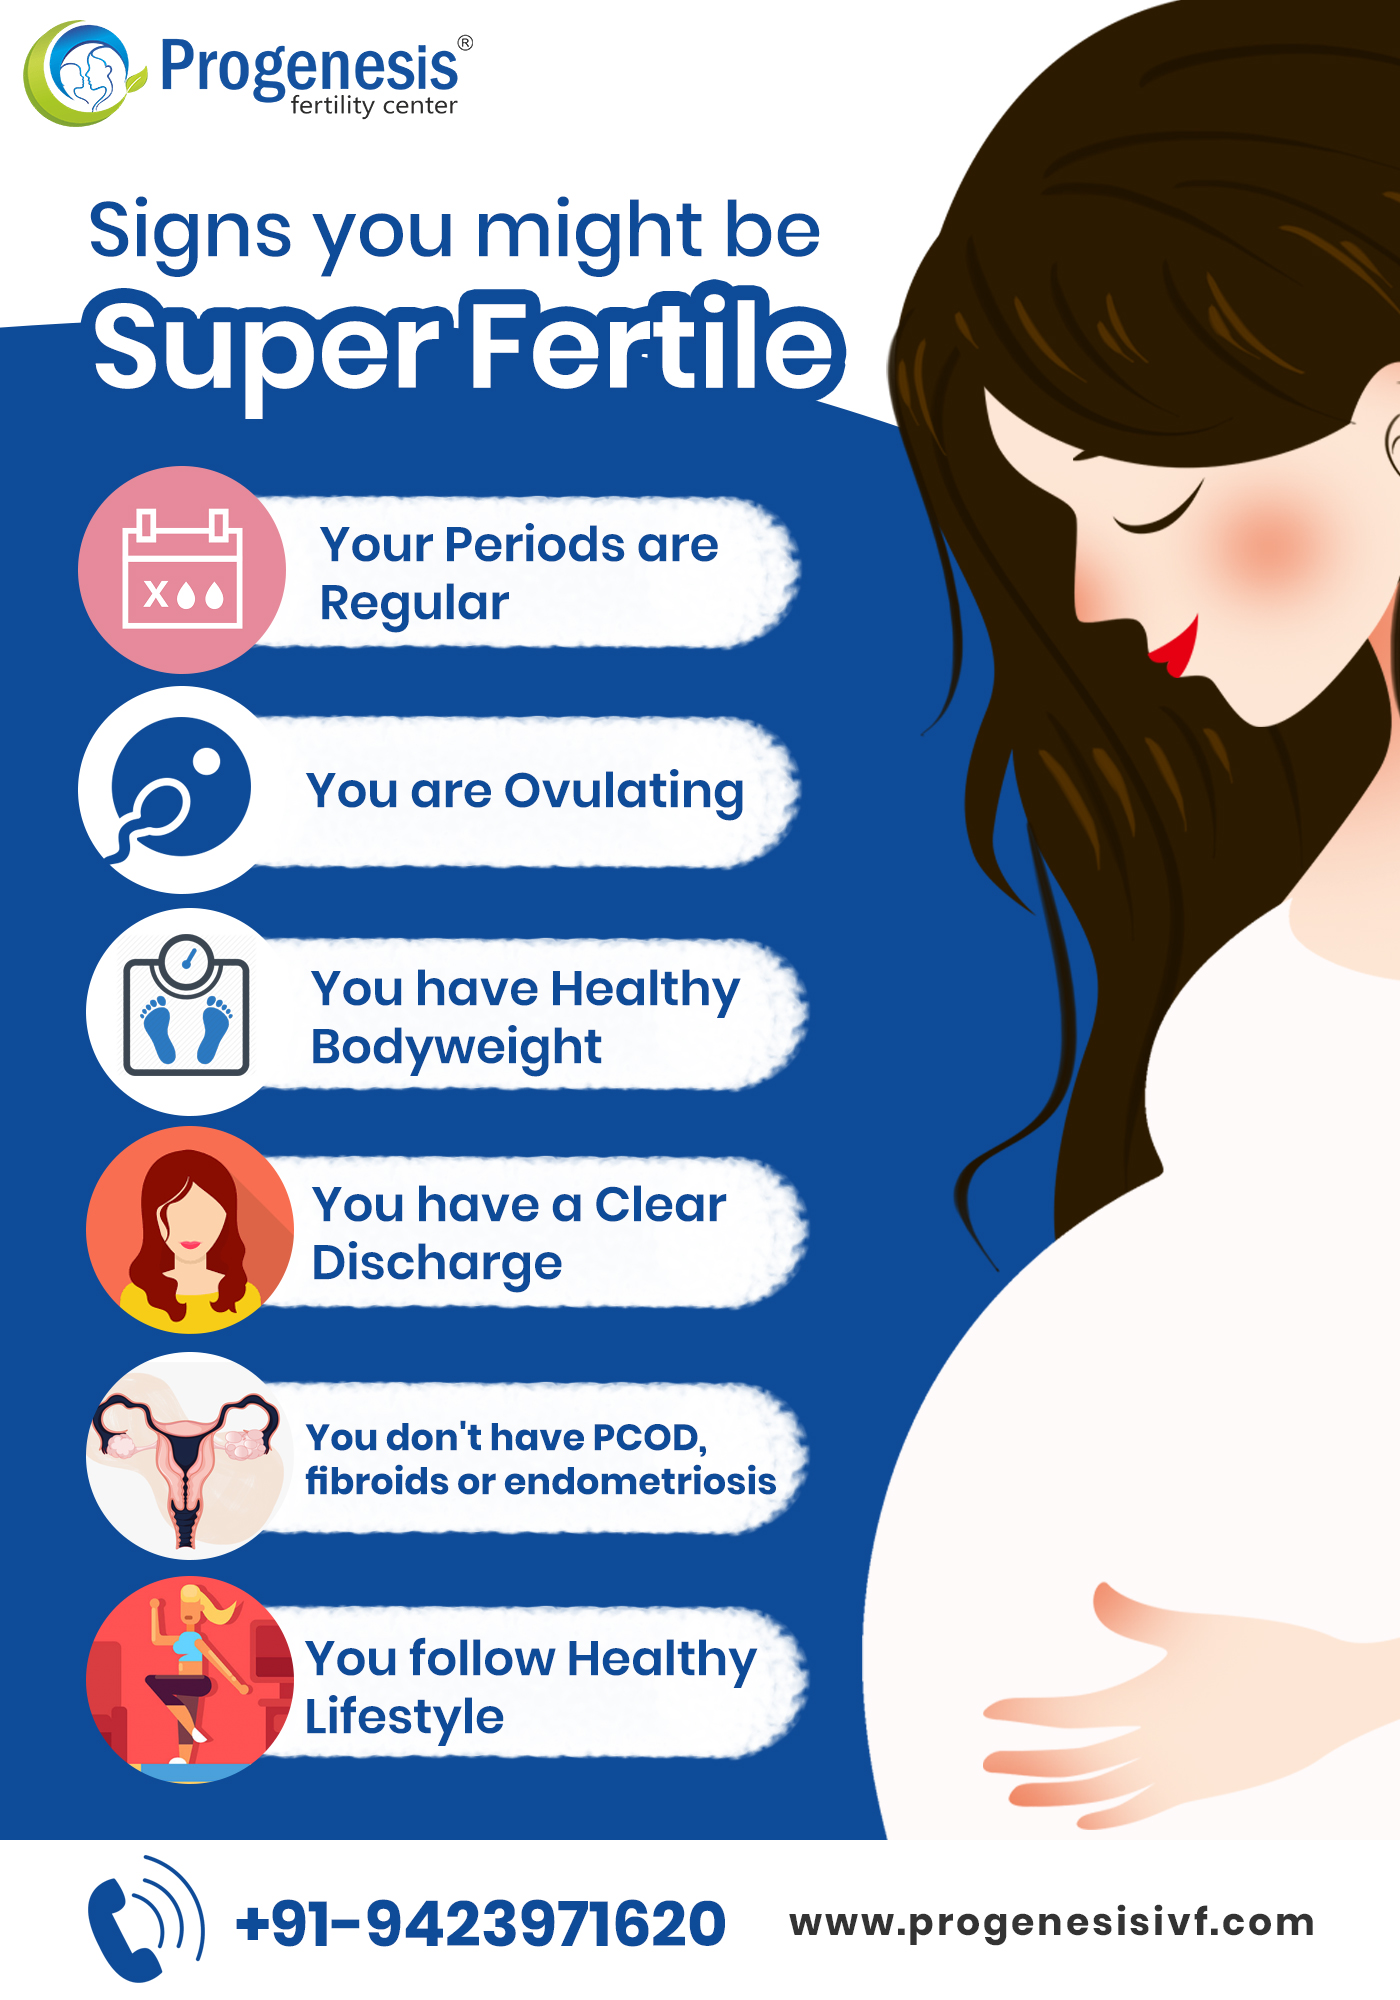 Signs you might be super fertile